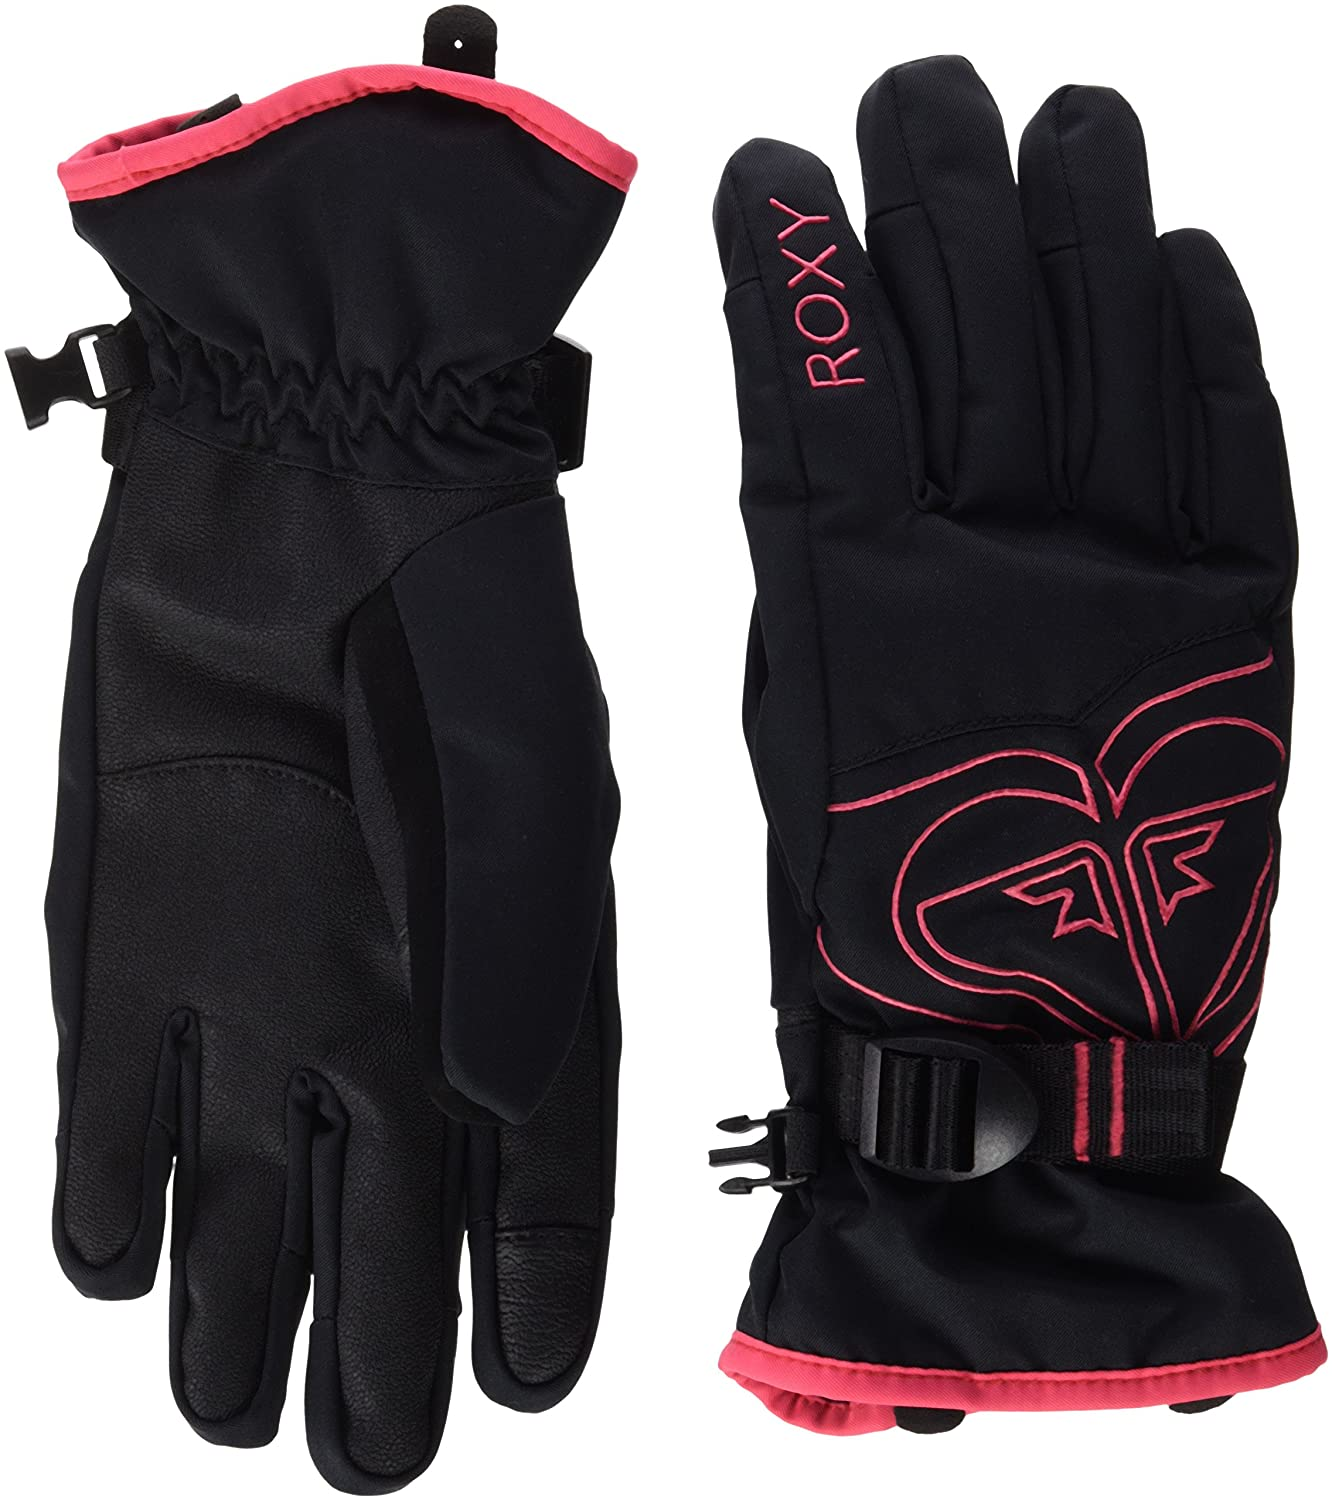 Roxy Popis – Guantes nieve para mujer, color negro, talla XL